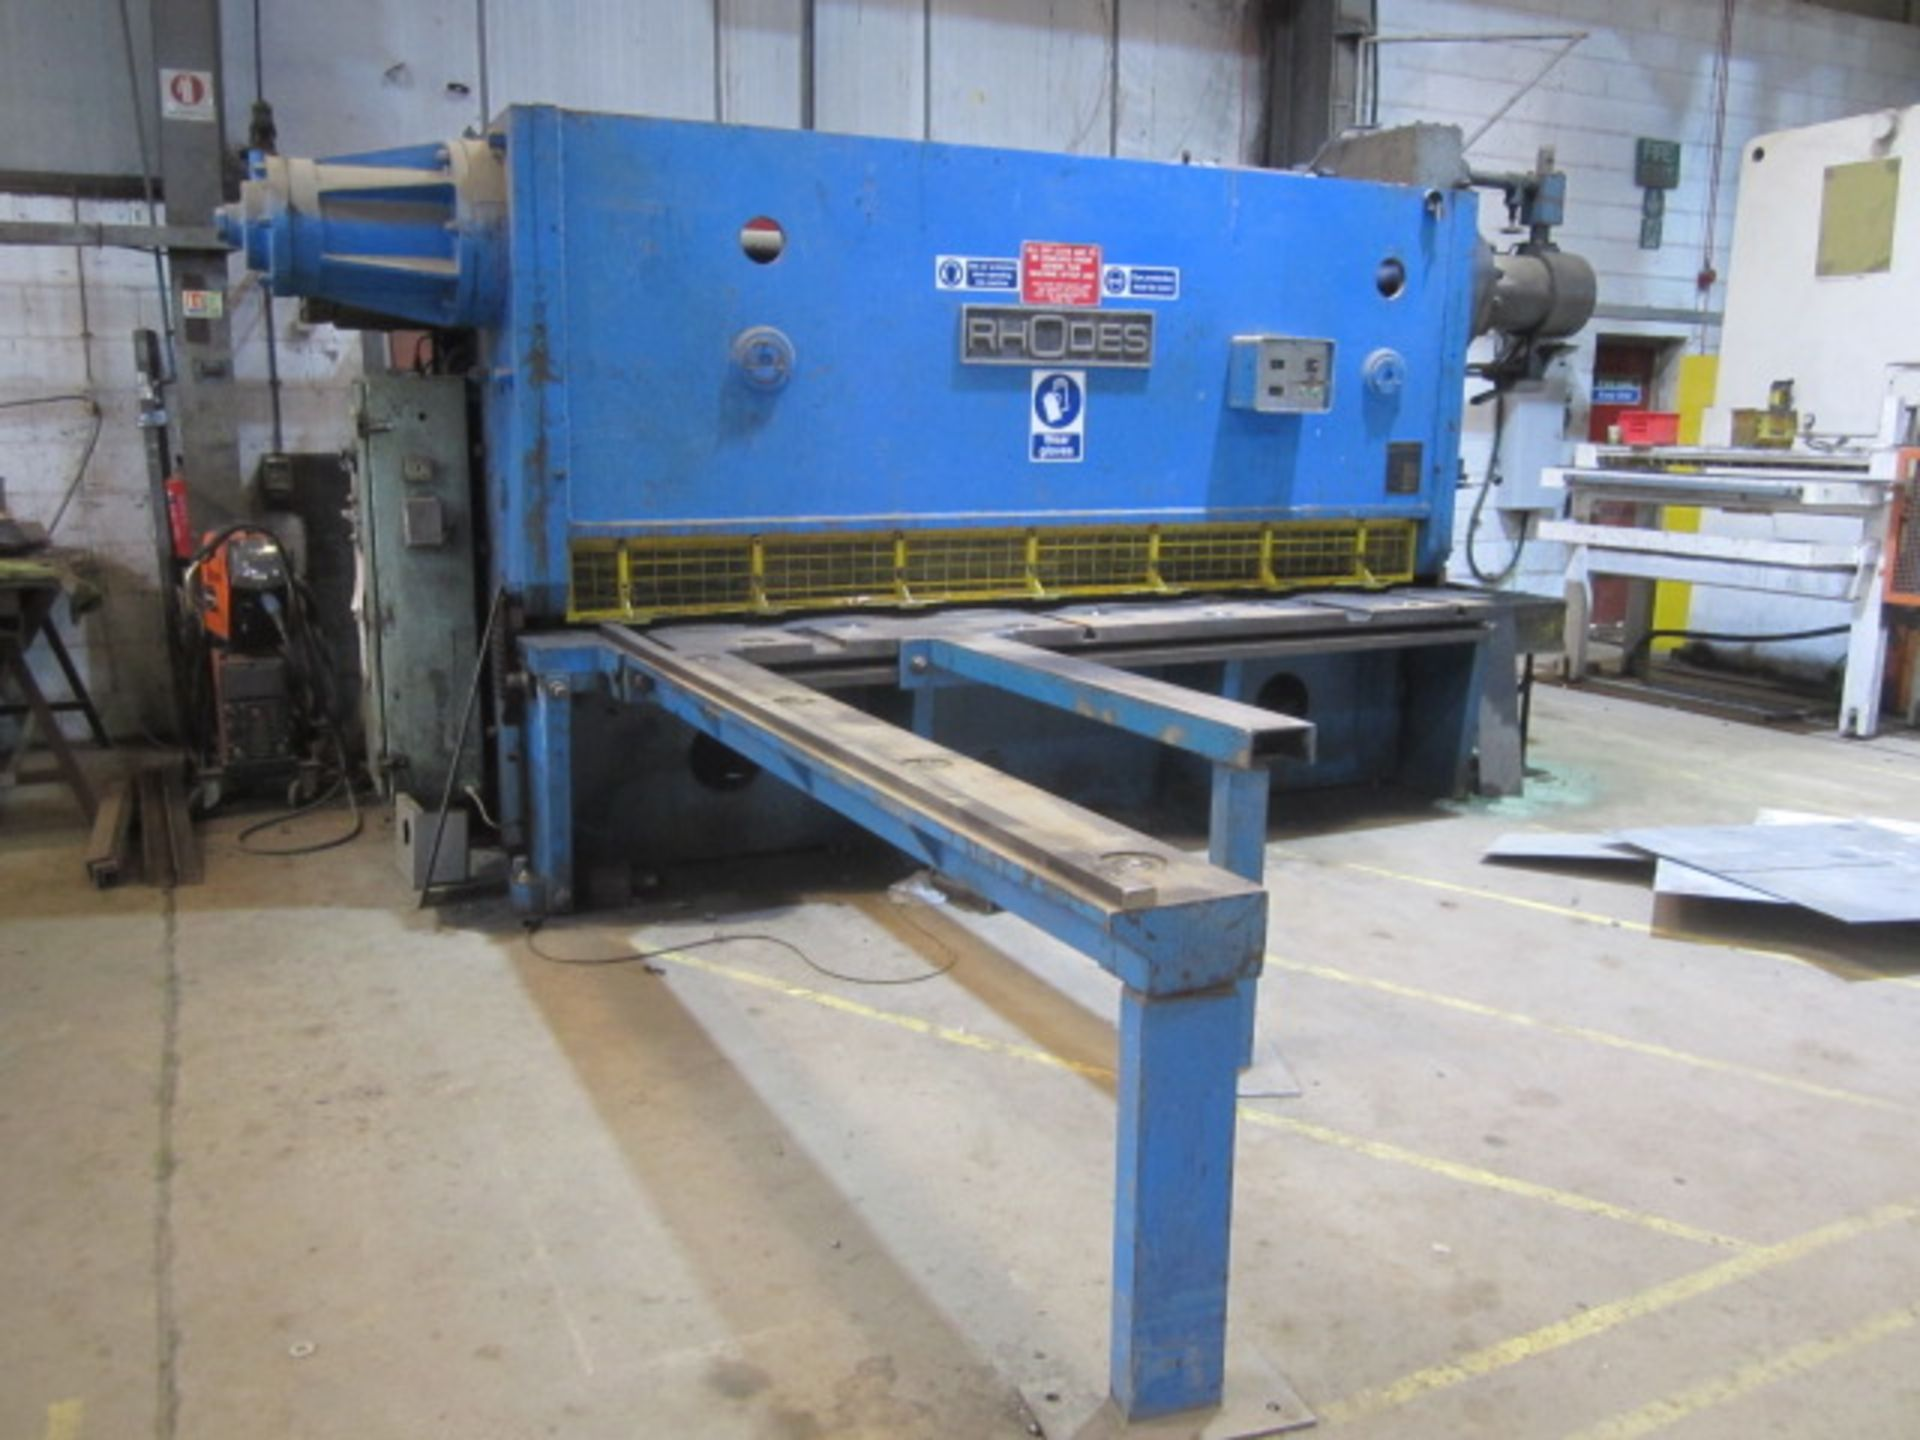 Rhodes 10ft heavy gauge hydraulic guillotine, serial no. 15603, power back gauge, front supports,